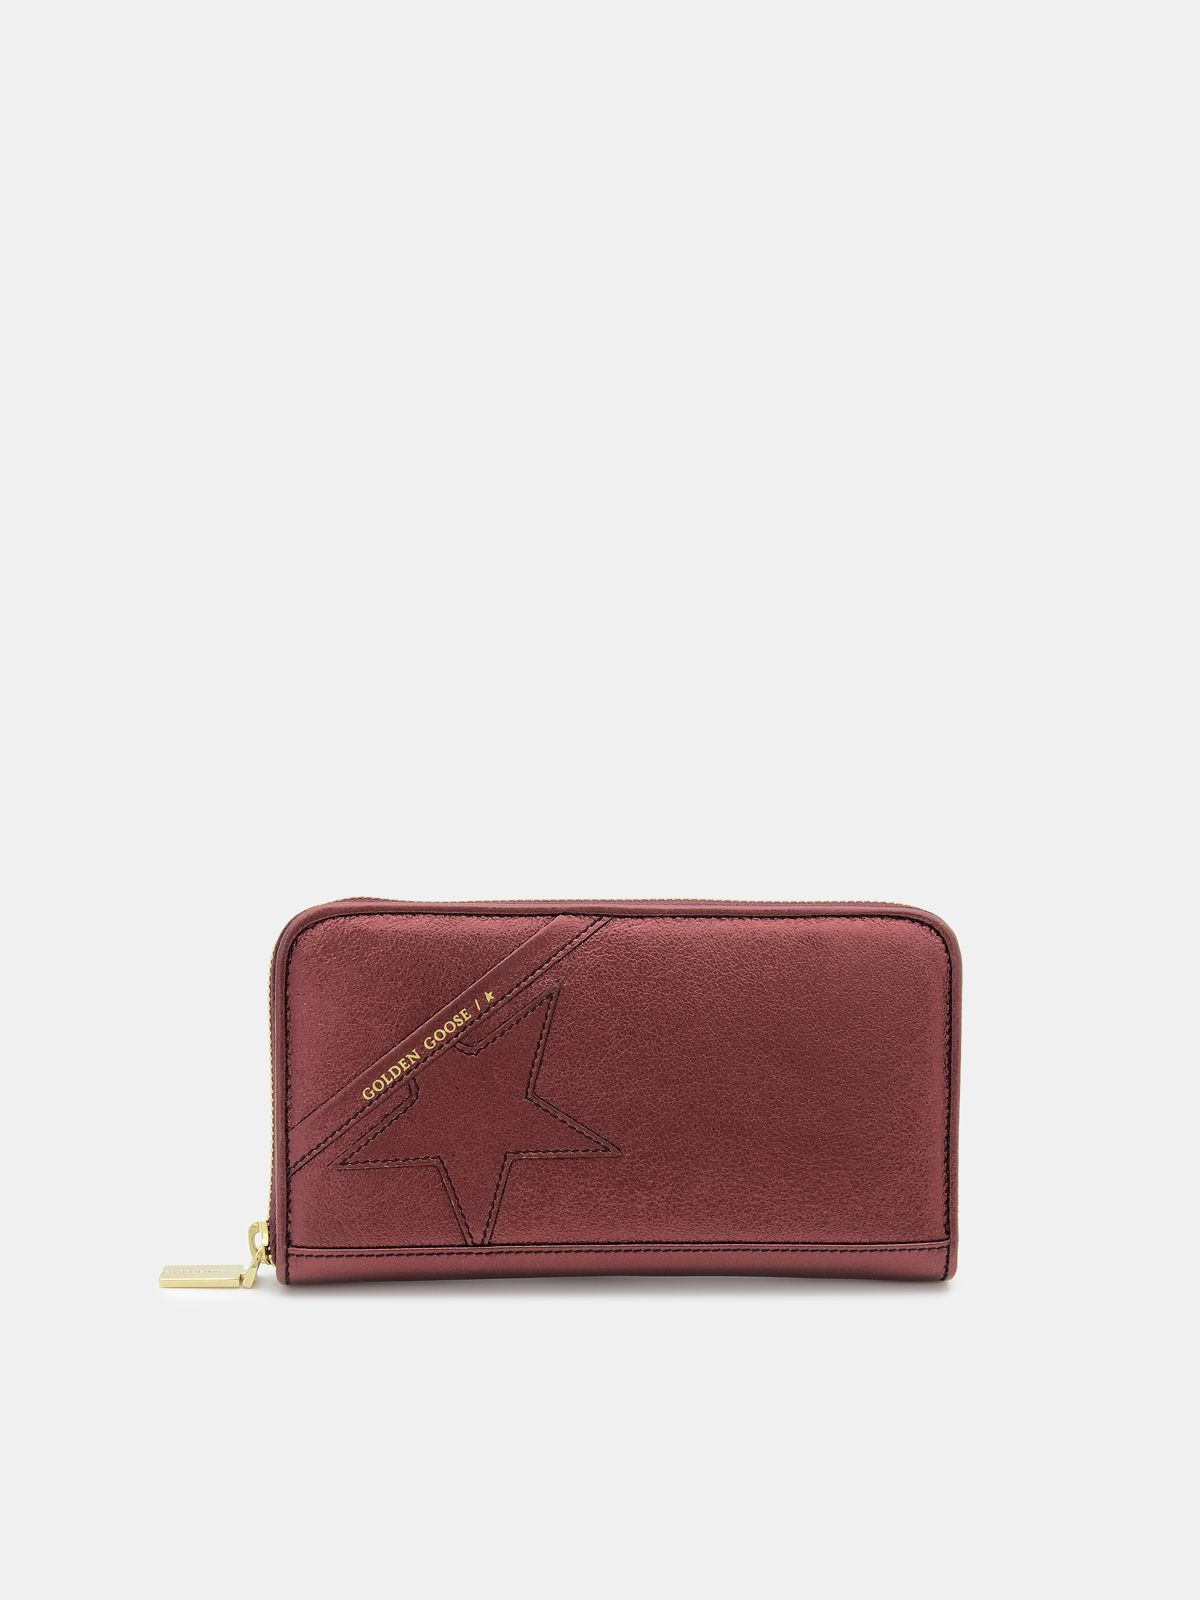 Large burgundy Star Wallet in laminated leather